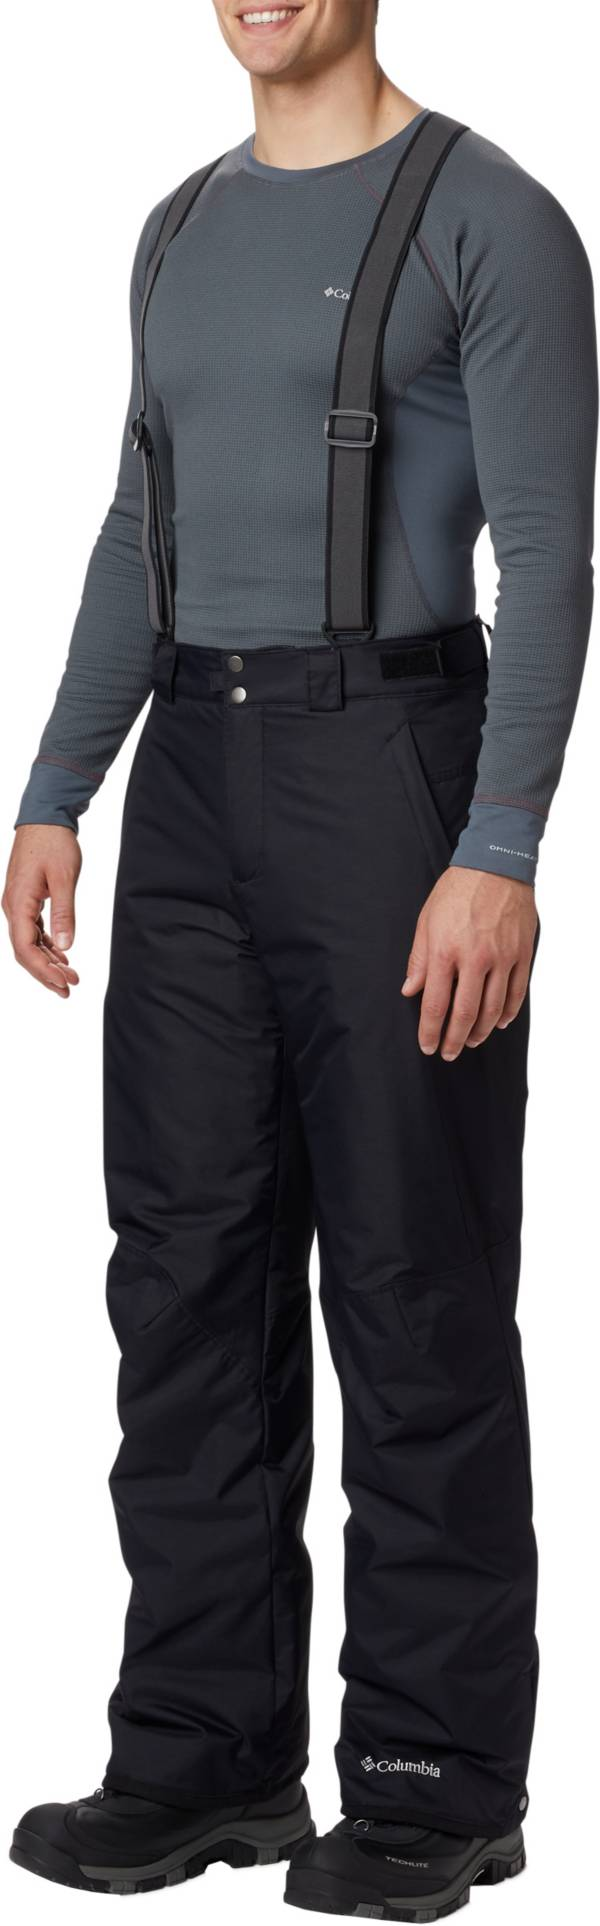 Columbia Men's Bugaboo Suspender Pants product image